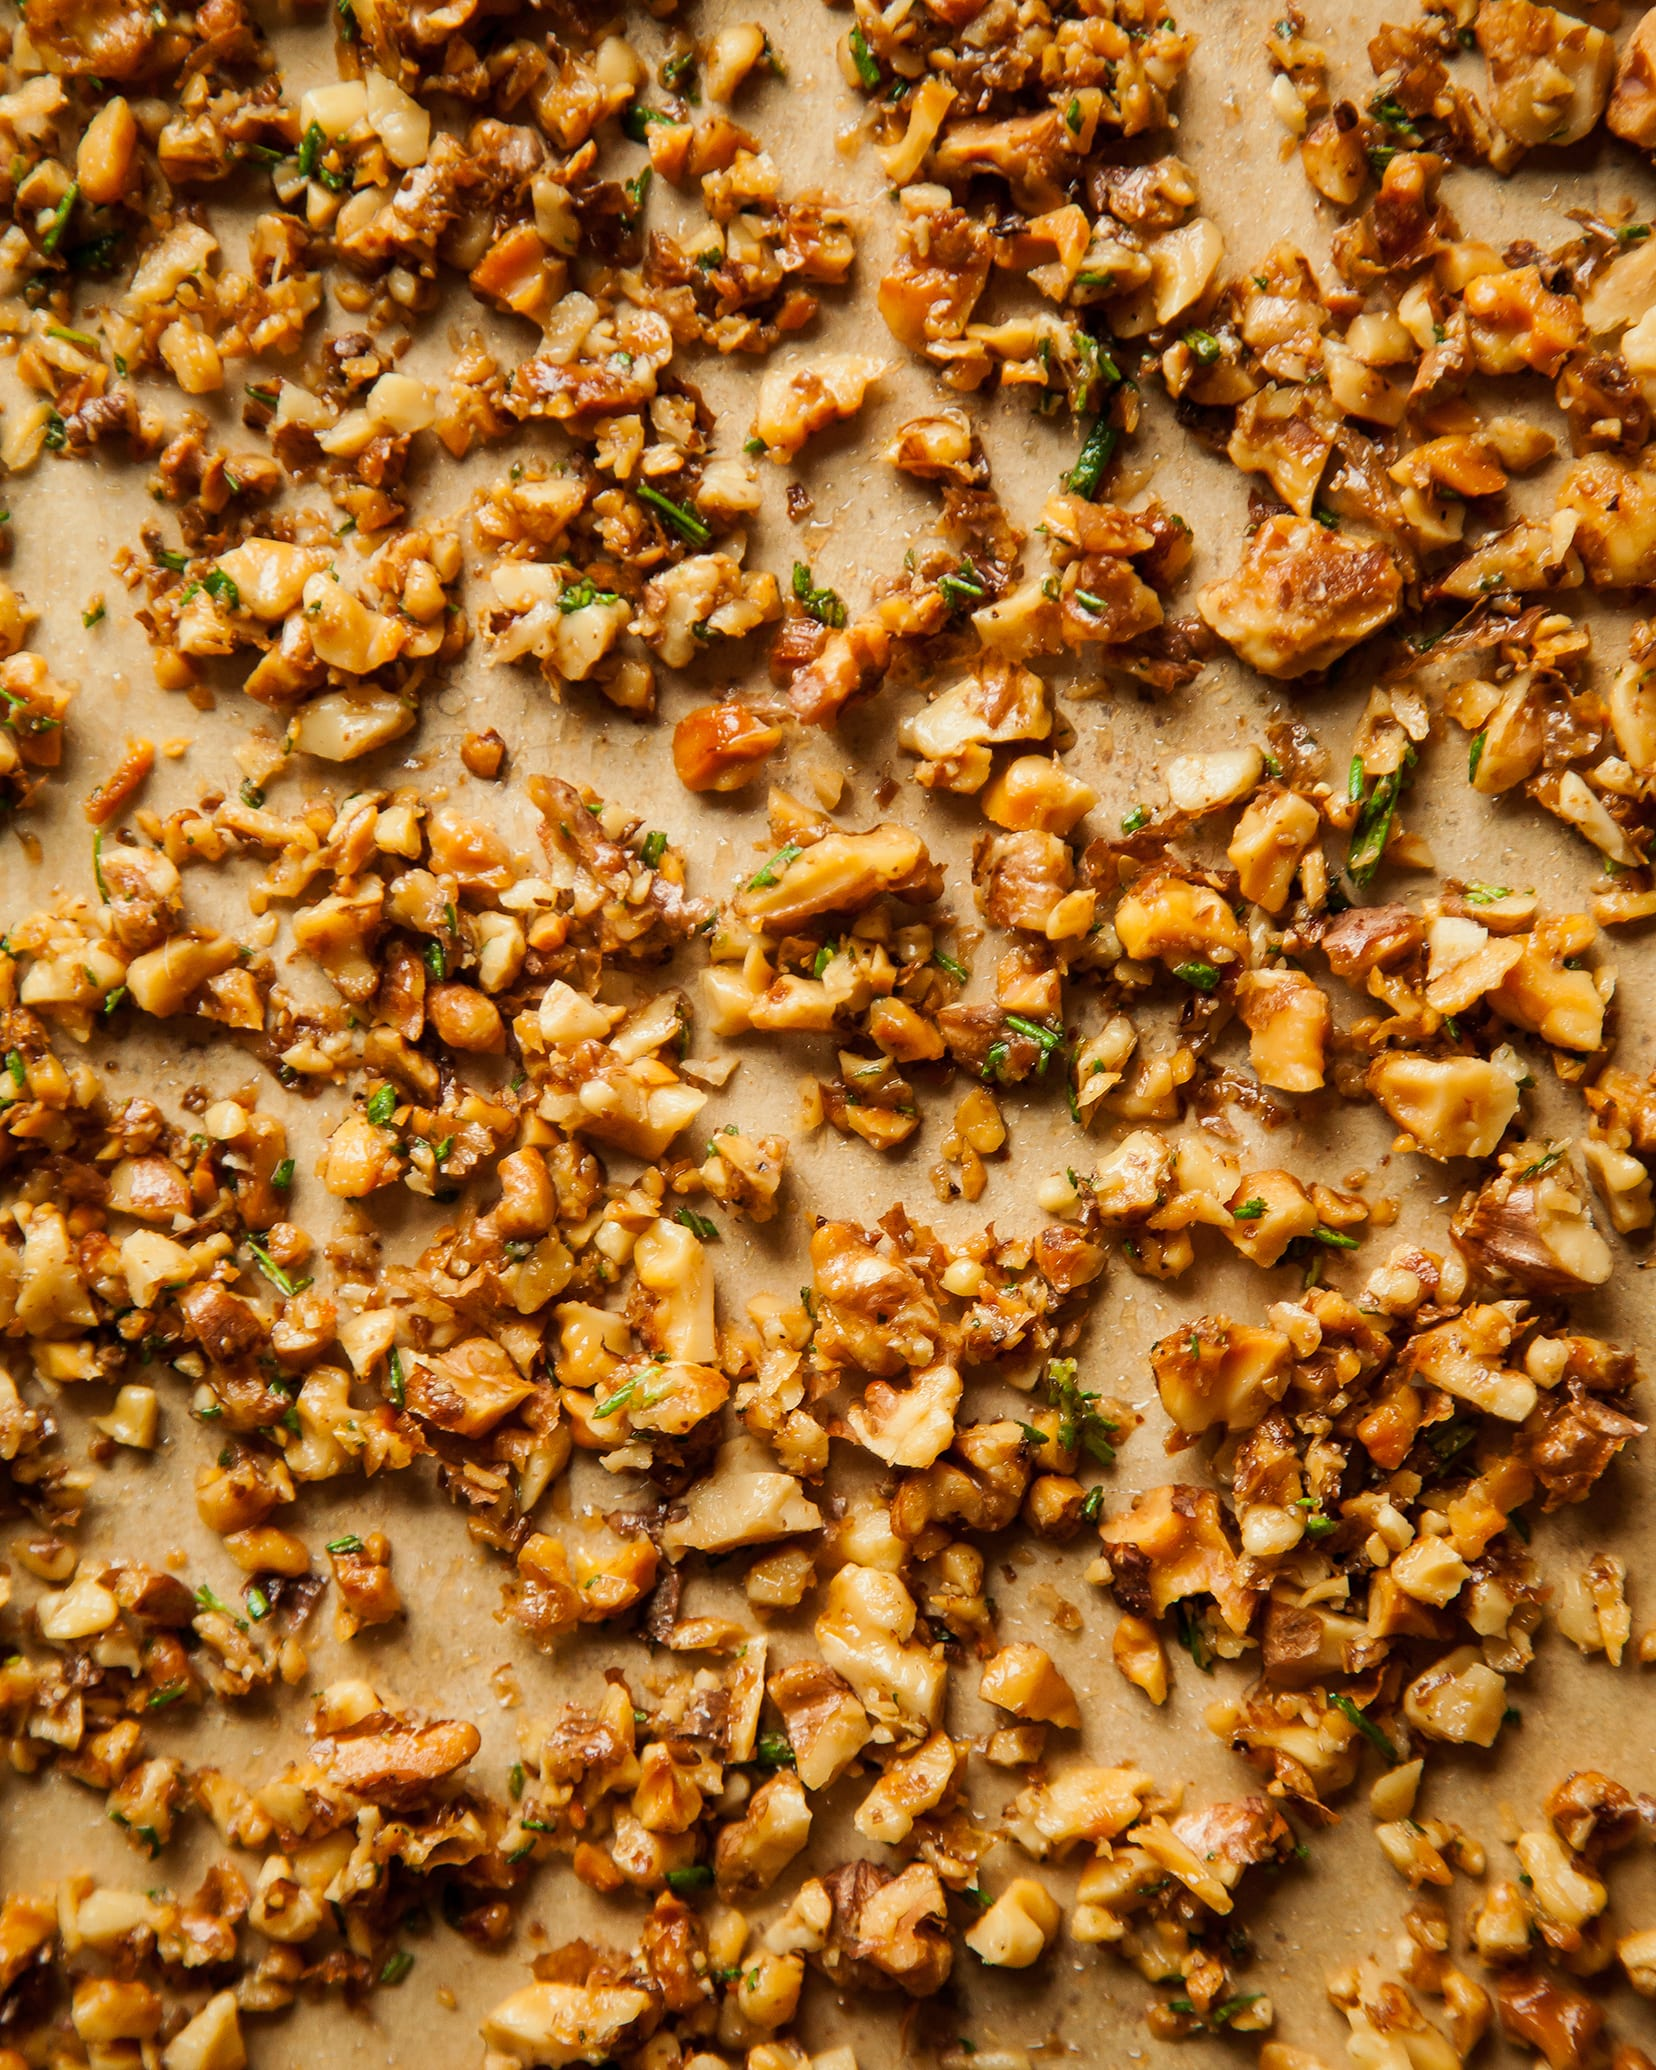 An overhead of chopped and toasted walnuts on top of parchment paper.